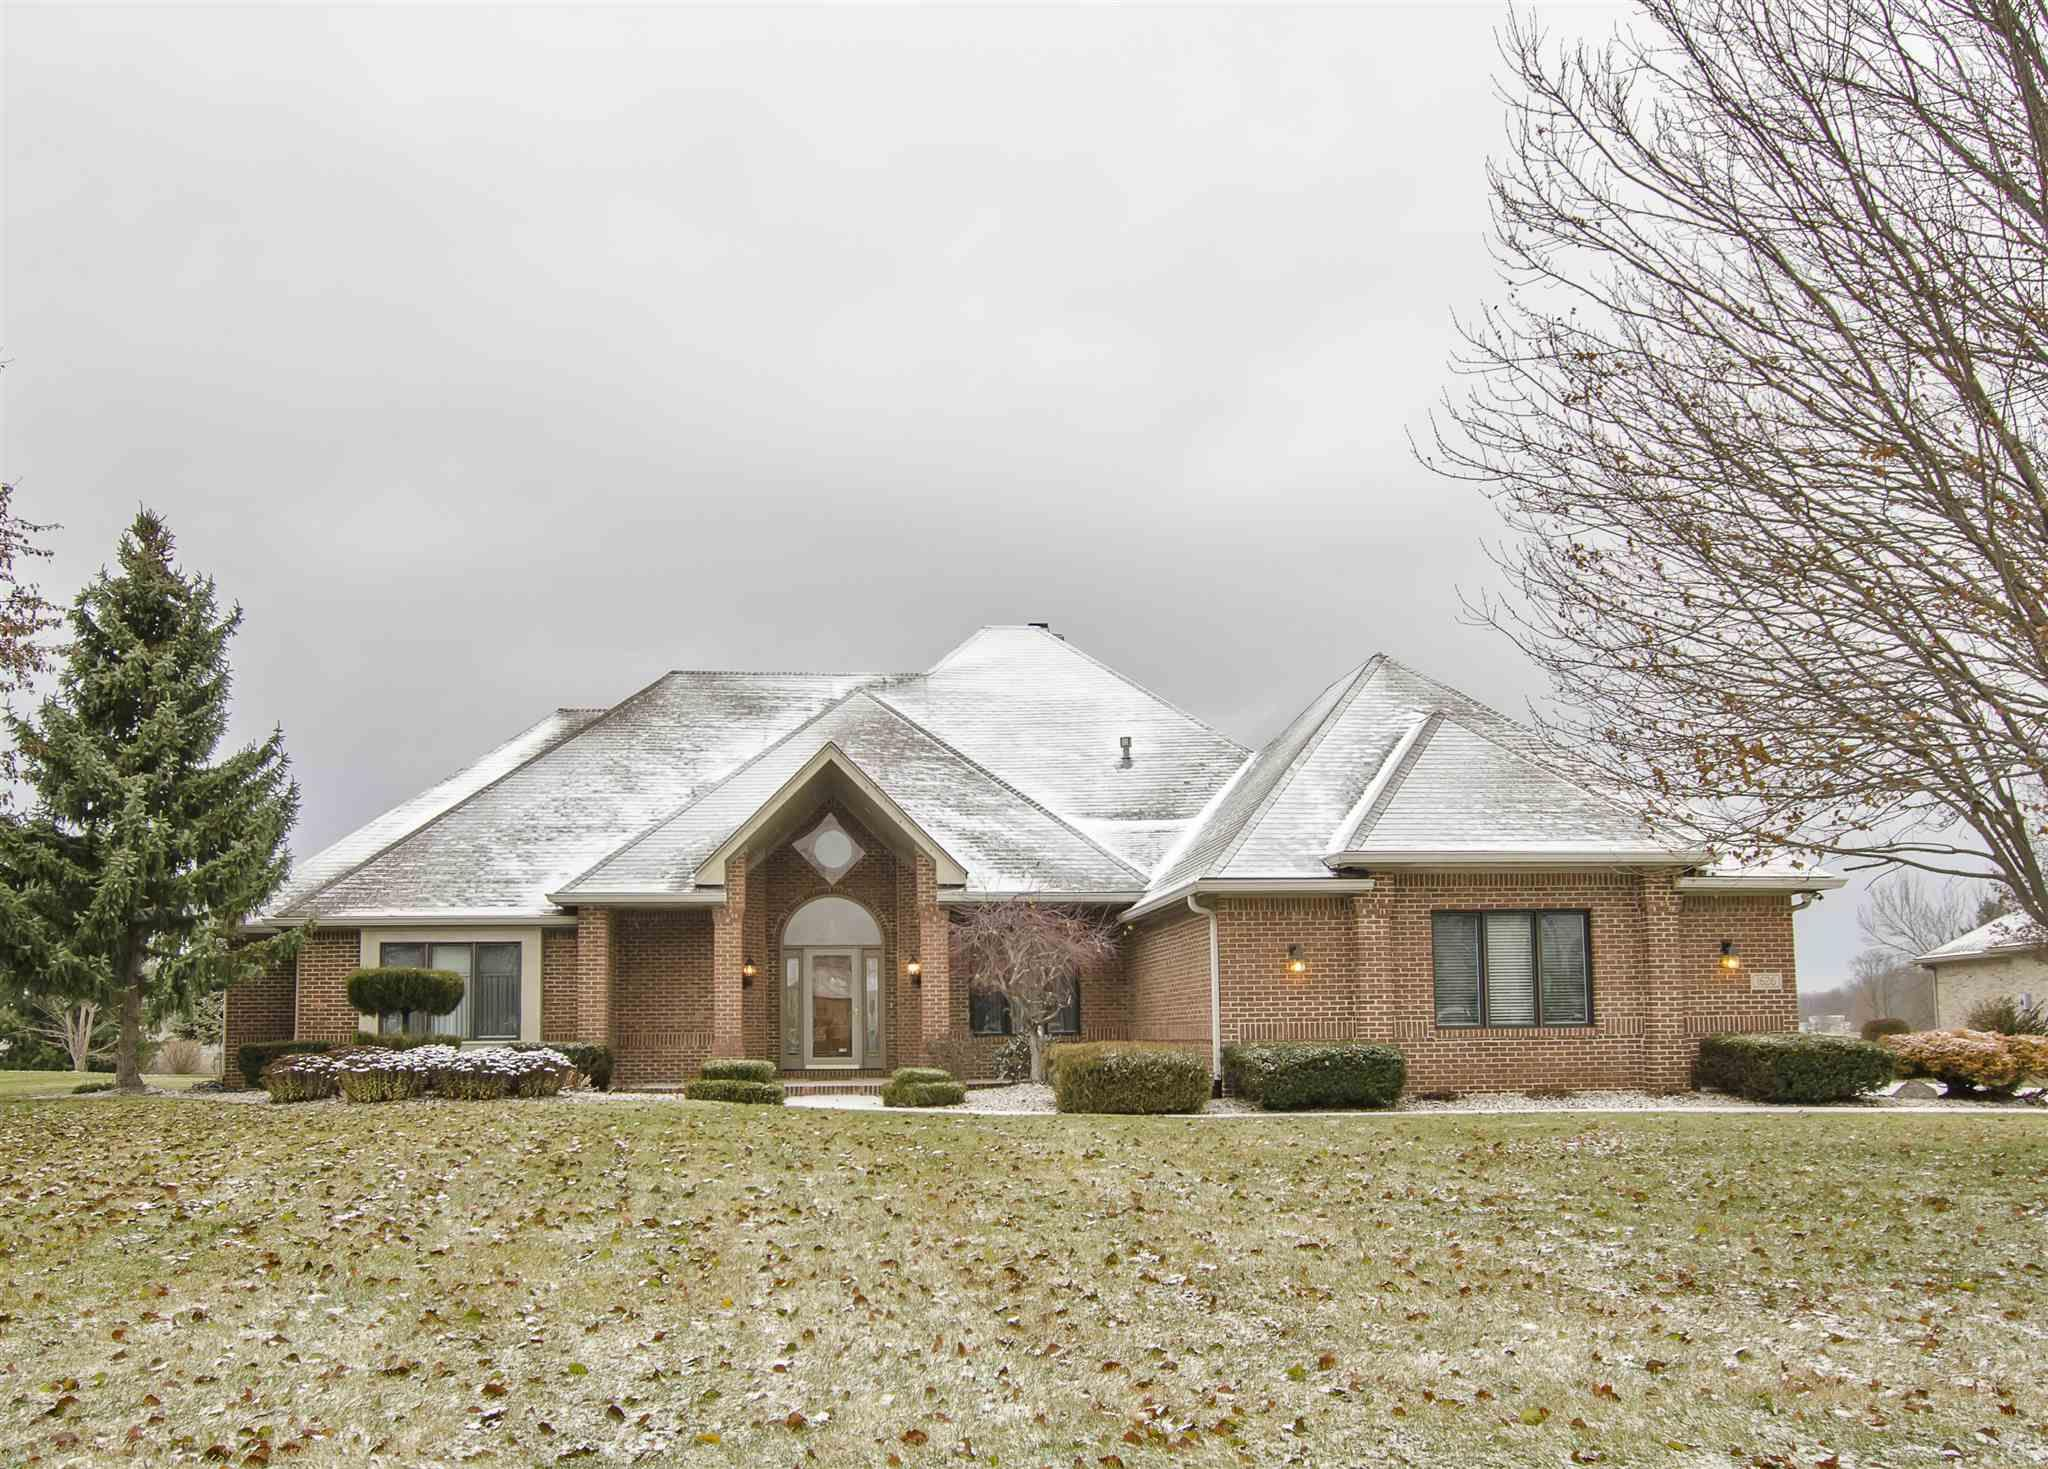 1626 Foxfire Lane, Kokomo, IN 46902-5072